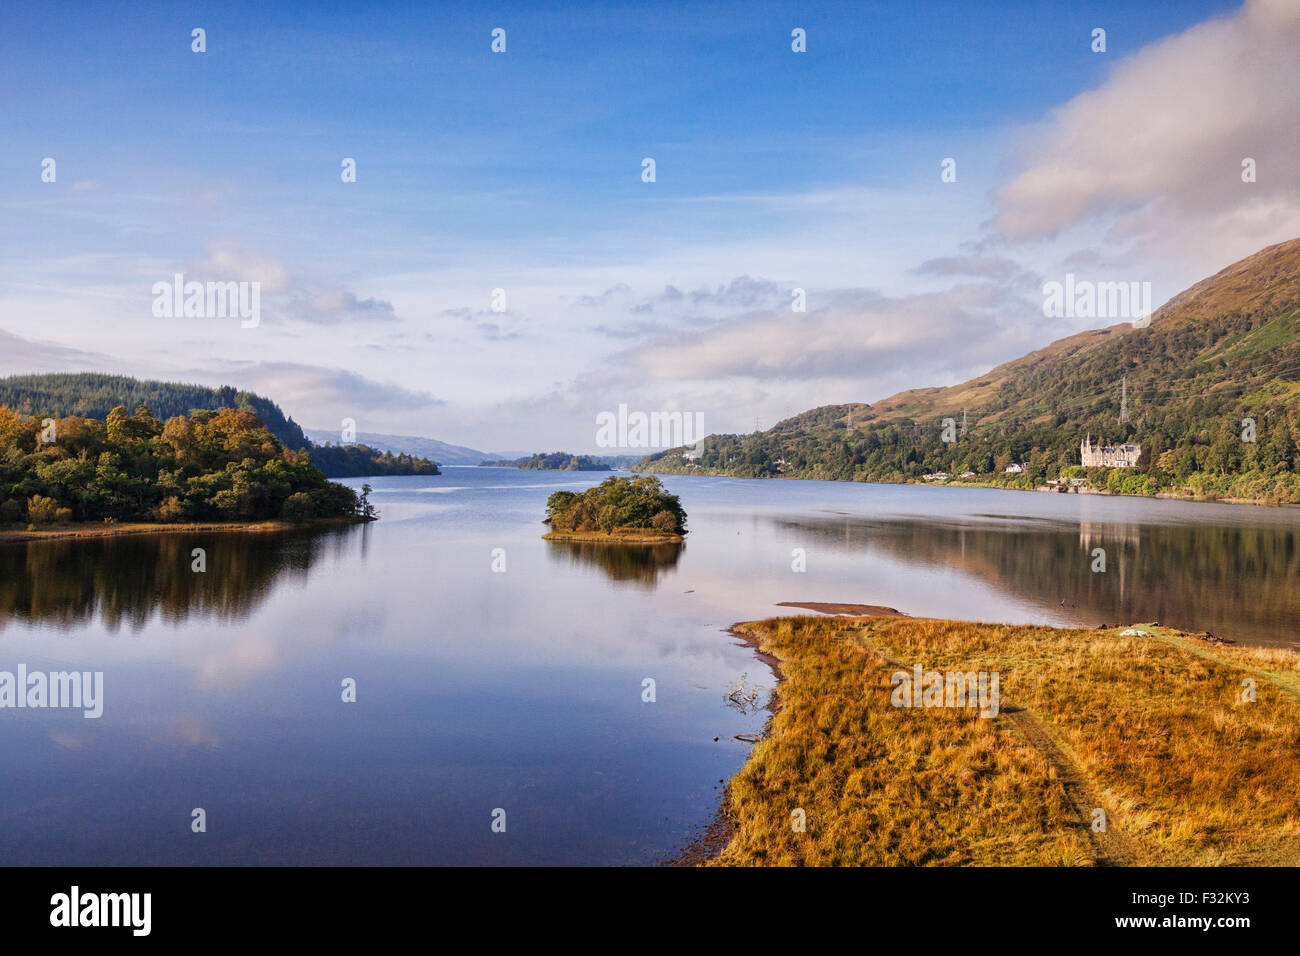 Loch Awe, and a distant view to the Loch Awe Hotel, Argyll and Bute, Scotland, UK. - Stock Image